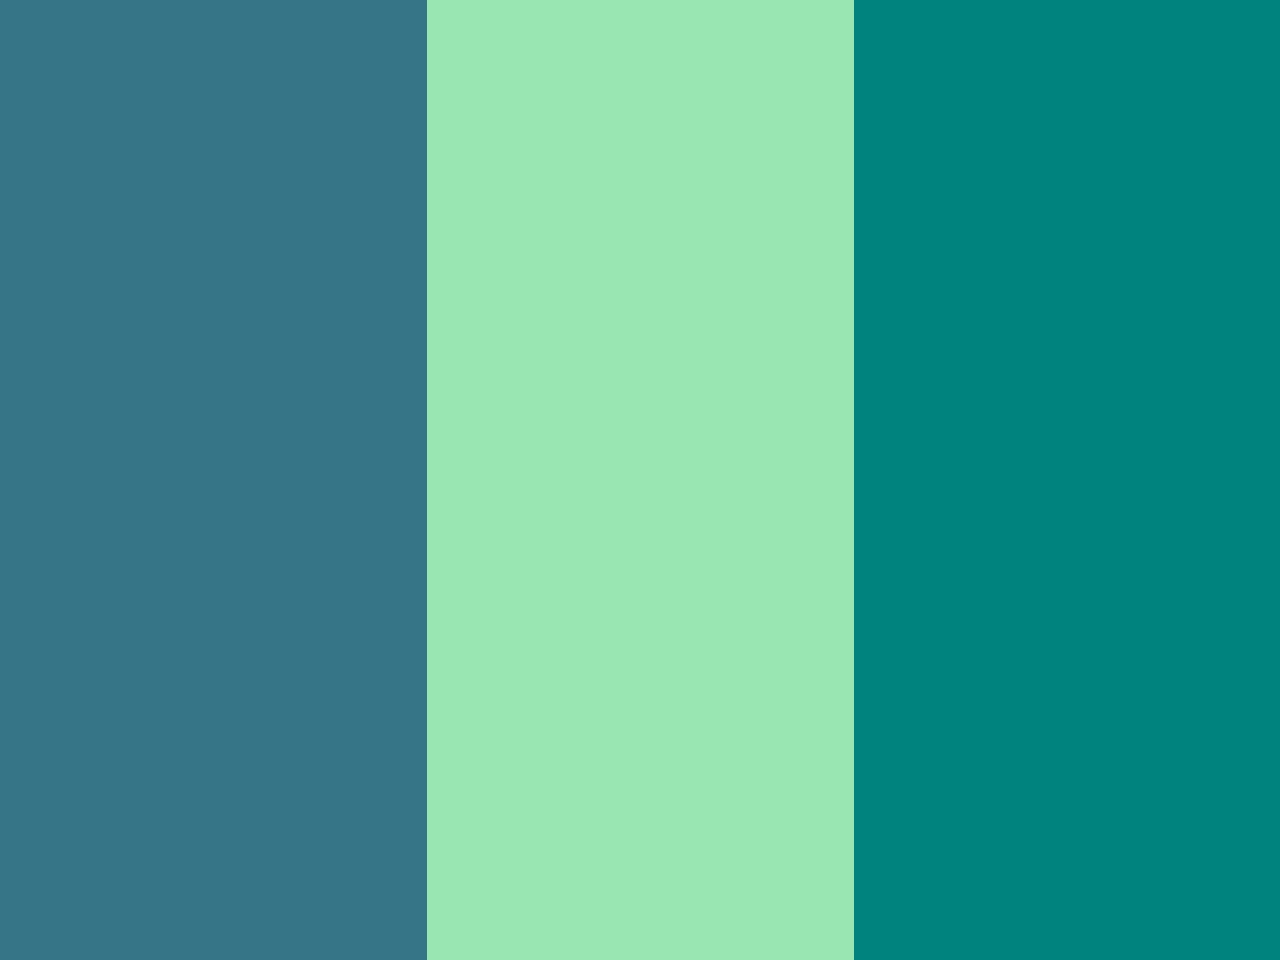 1280x960 teal blue teal deer teal green three color What color is teal